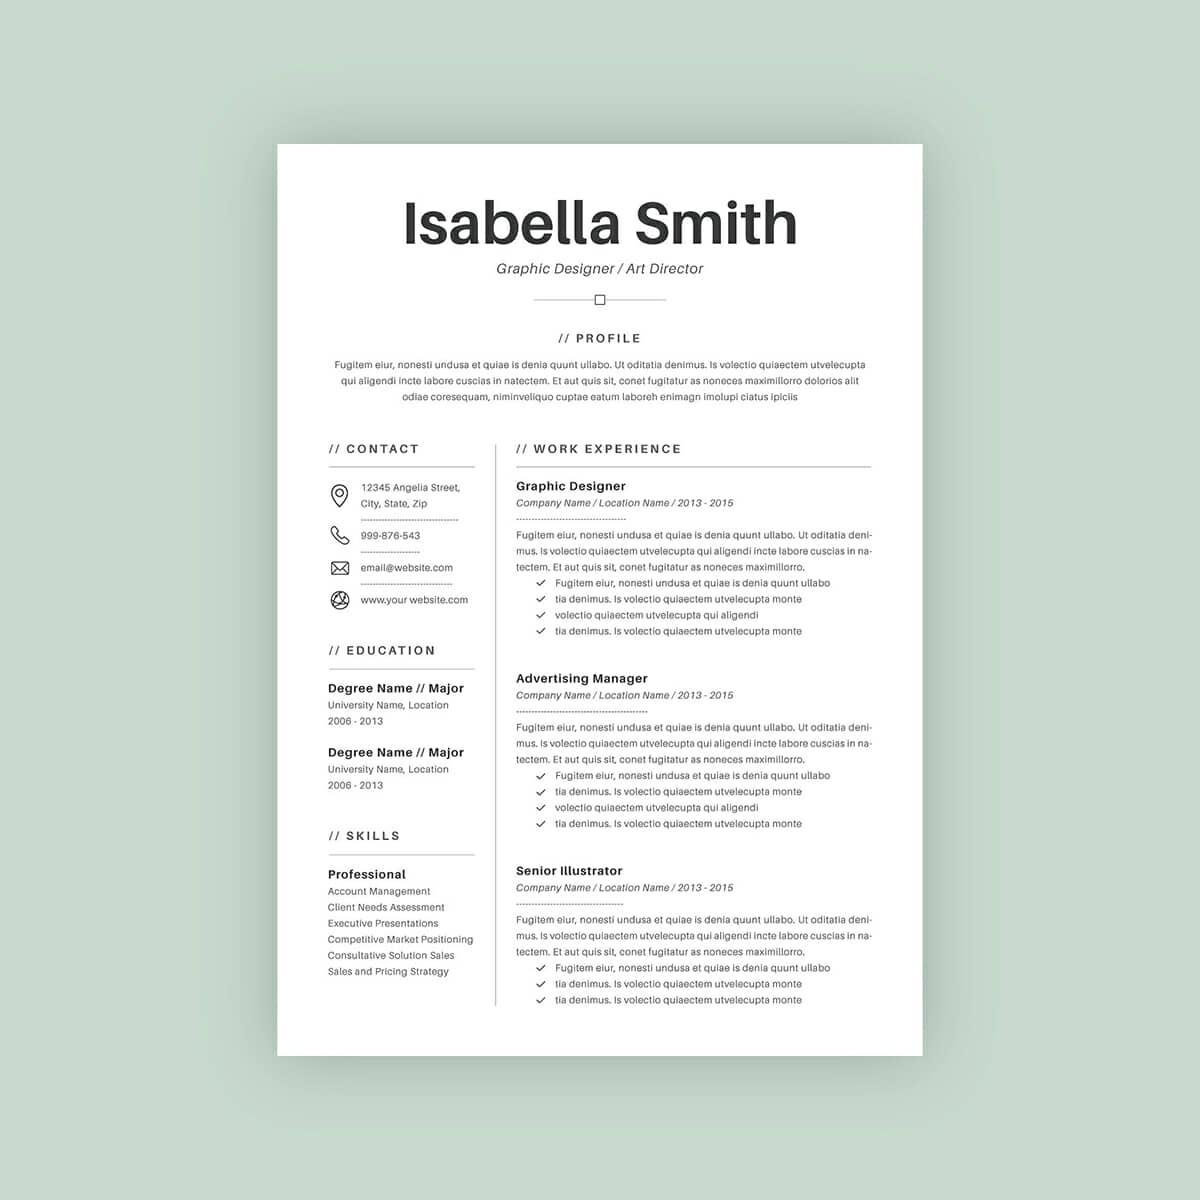 Uptowork Resume Basic Resume Templates 15 43 Examples To Download And Use Now